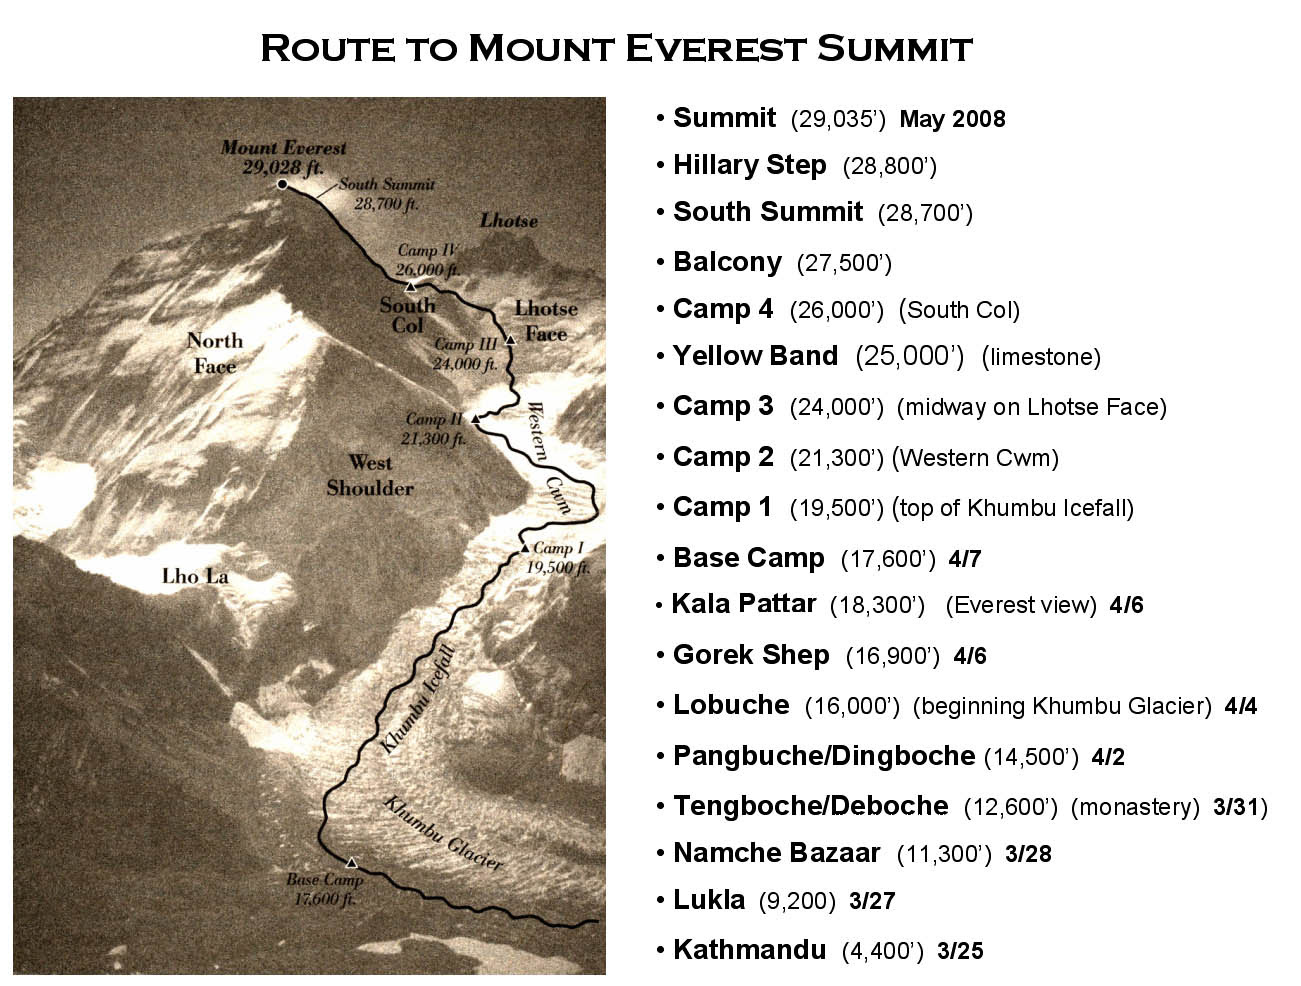 http://images.spaceref.com/news/2008/everest.route.l.jpg